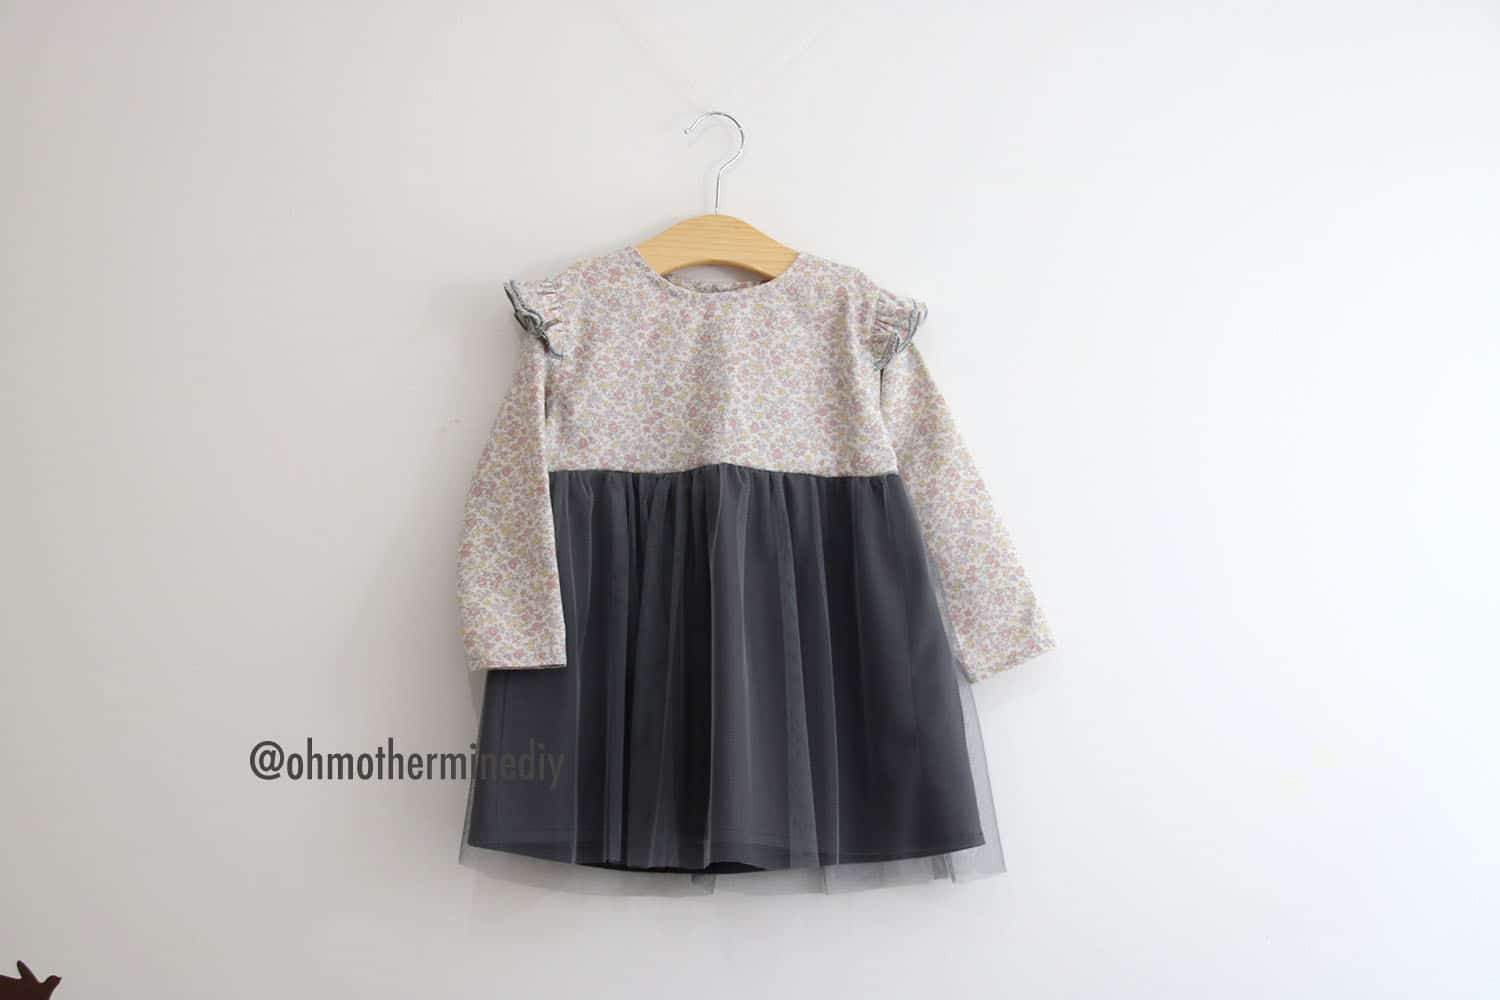 vestido archivos - Handbox Craft Lovers | Comunidad DIY, Tutoriales ...